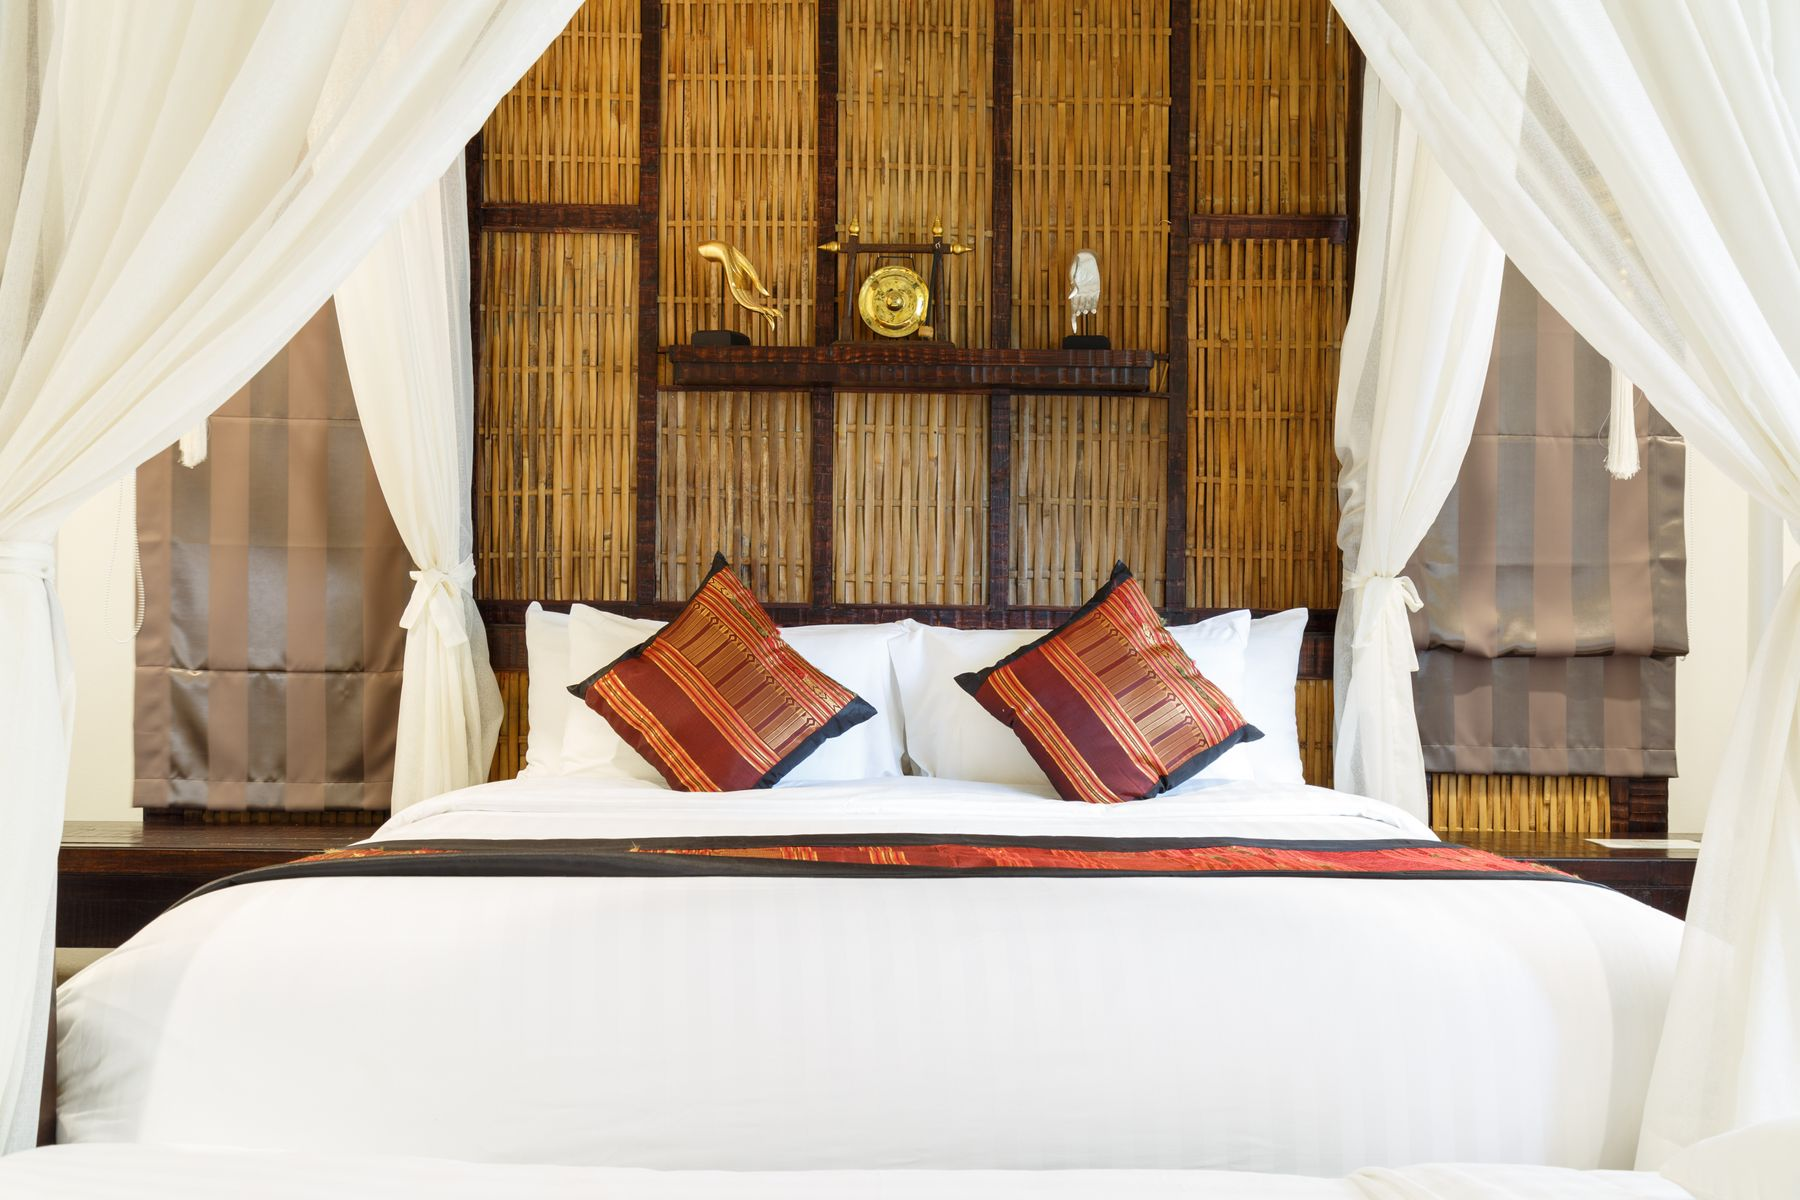 Luxurious hotel room that needs cancellation